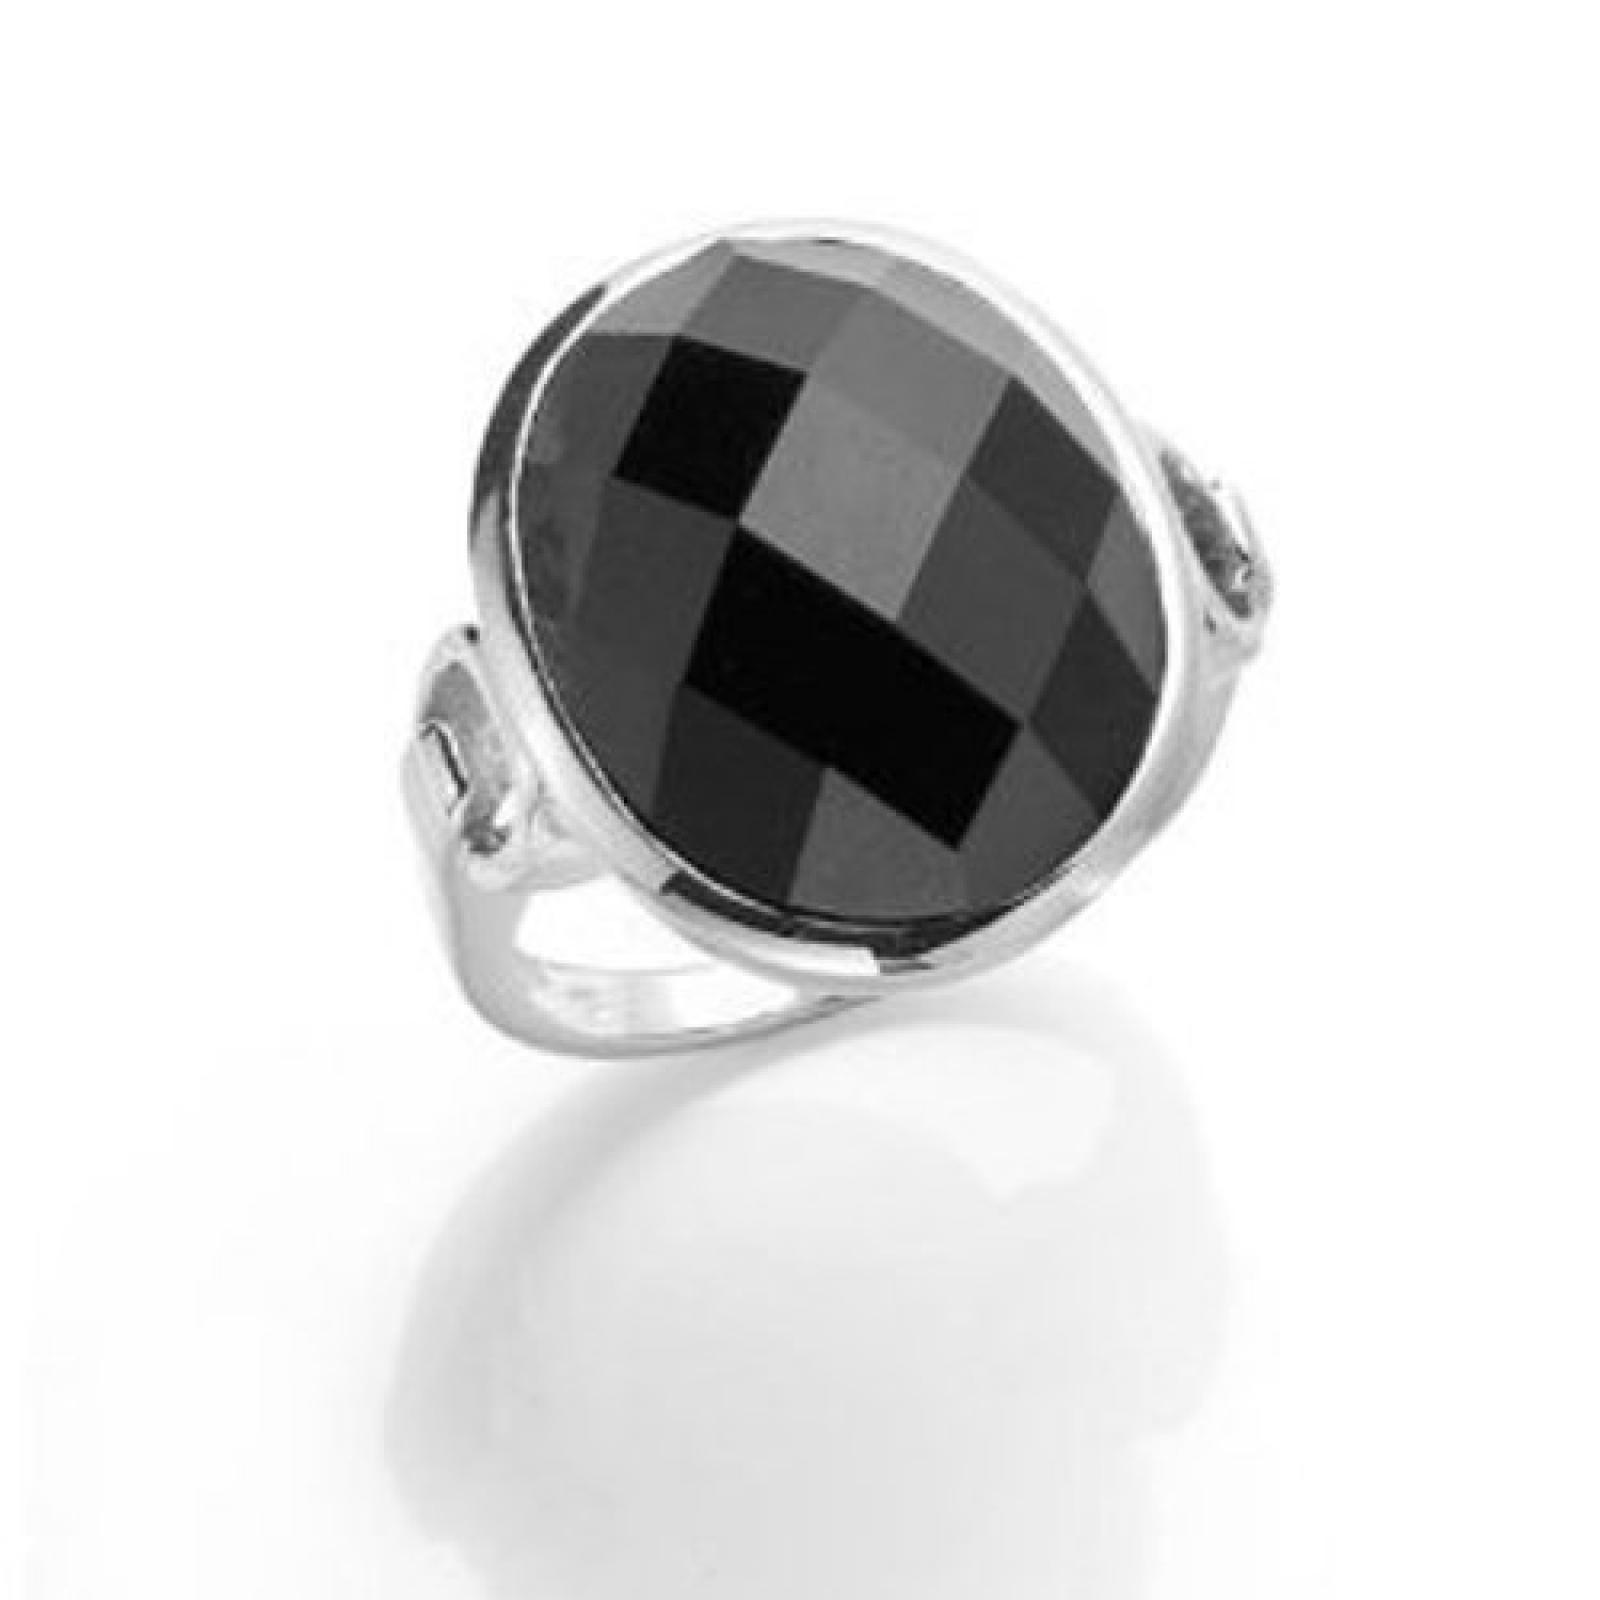 Celesta Damen-Ring 925 Sterlingsilber synth. Onyx Gr. 60 (19.1) 360270916060